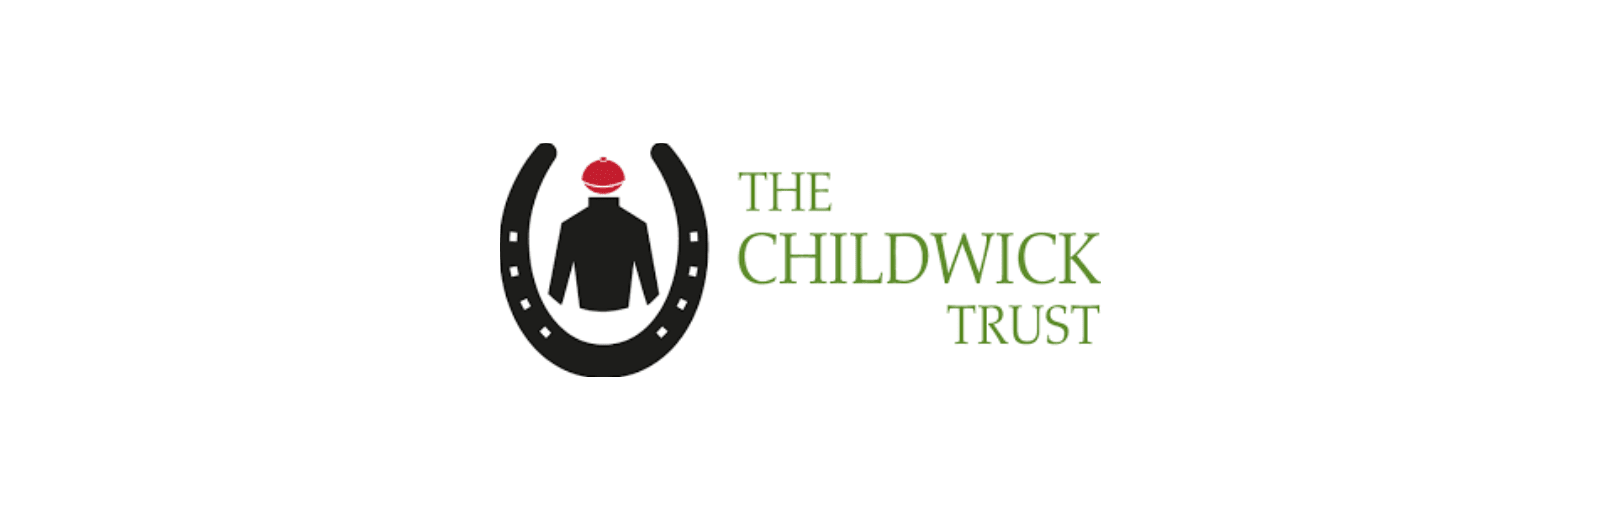 £15k grant received from The Childwick Trust